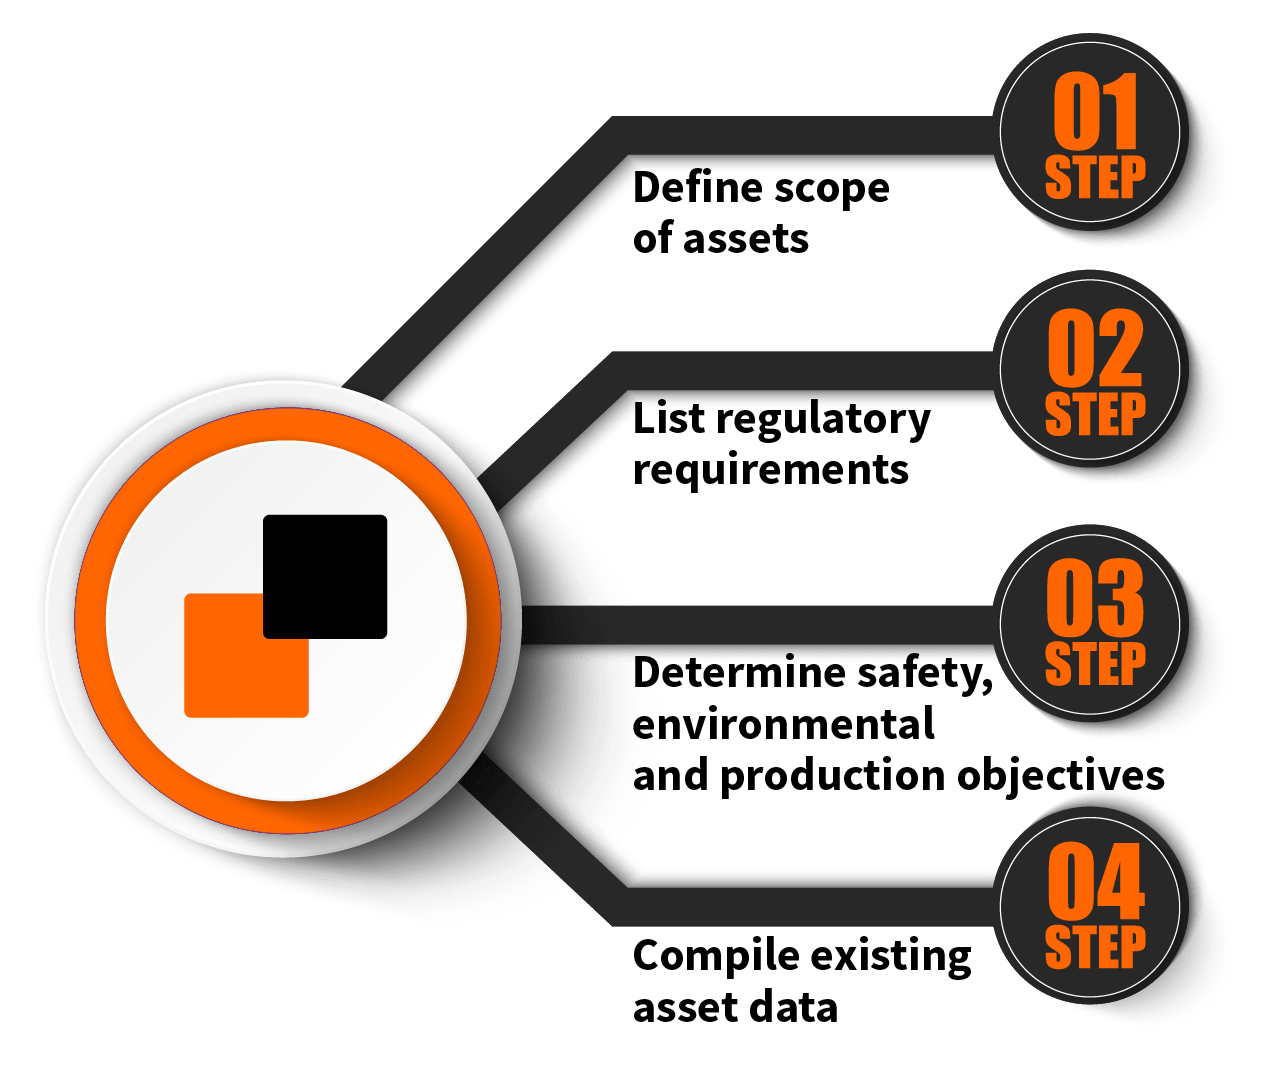 Program Scope. Step 1 - Define scope of assets. Step 2 - List regulatory requirements. Step 3 - Determine safety, environmental and production objectives. Step 4 - Compile existing asset data.